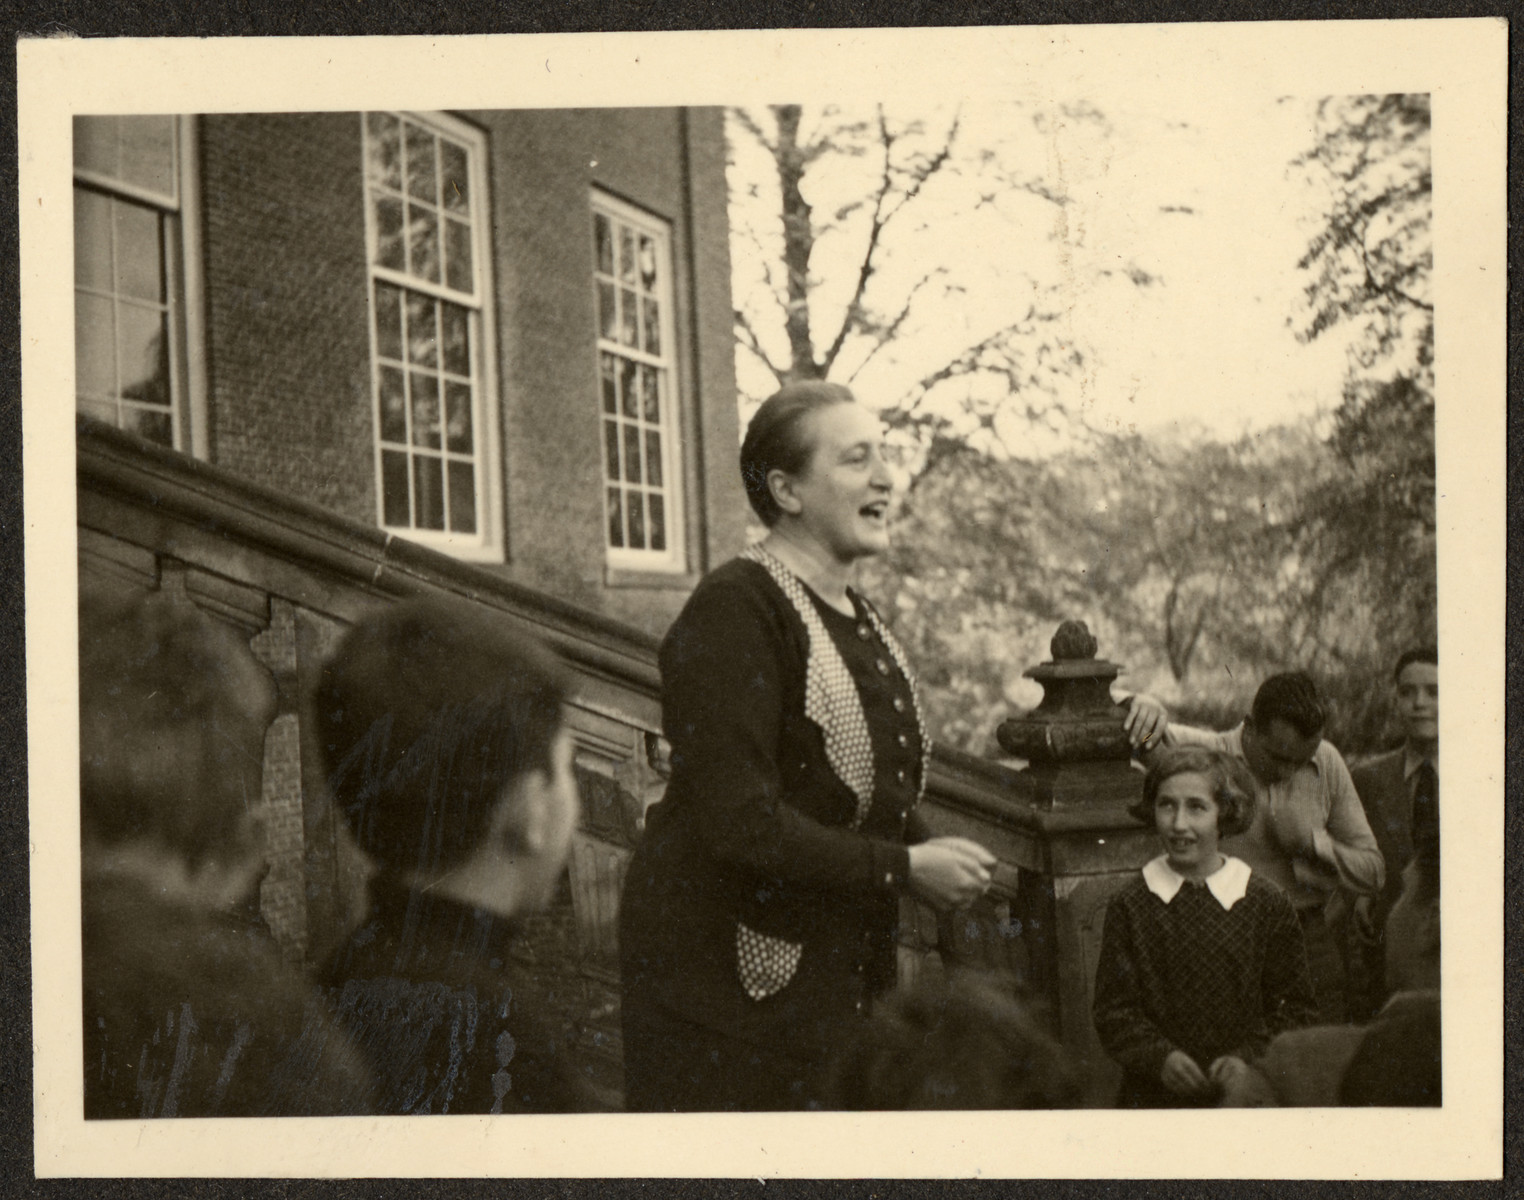 A teacher leads an activity for students, many of them German Jewish refugees, on the steps of a Quaker boarding school in Eerde.